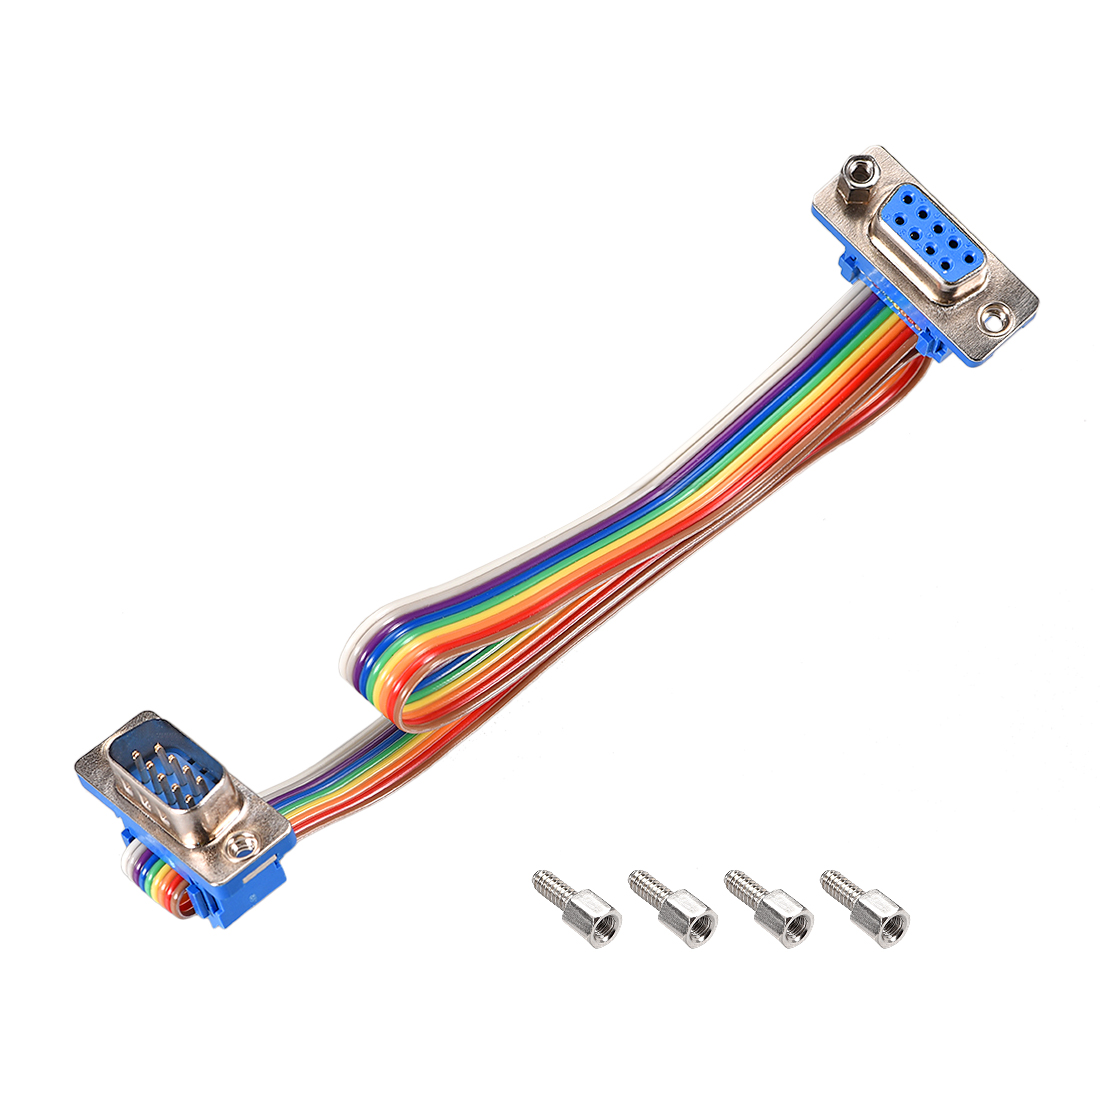 IDC Rainbow Wire Flat Ribbon Cable DB9 M/F Connector 2.54mm Pitch 11.8inch Long